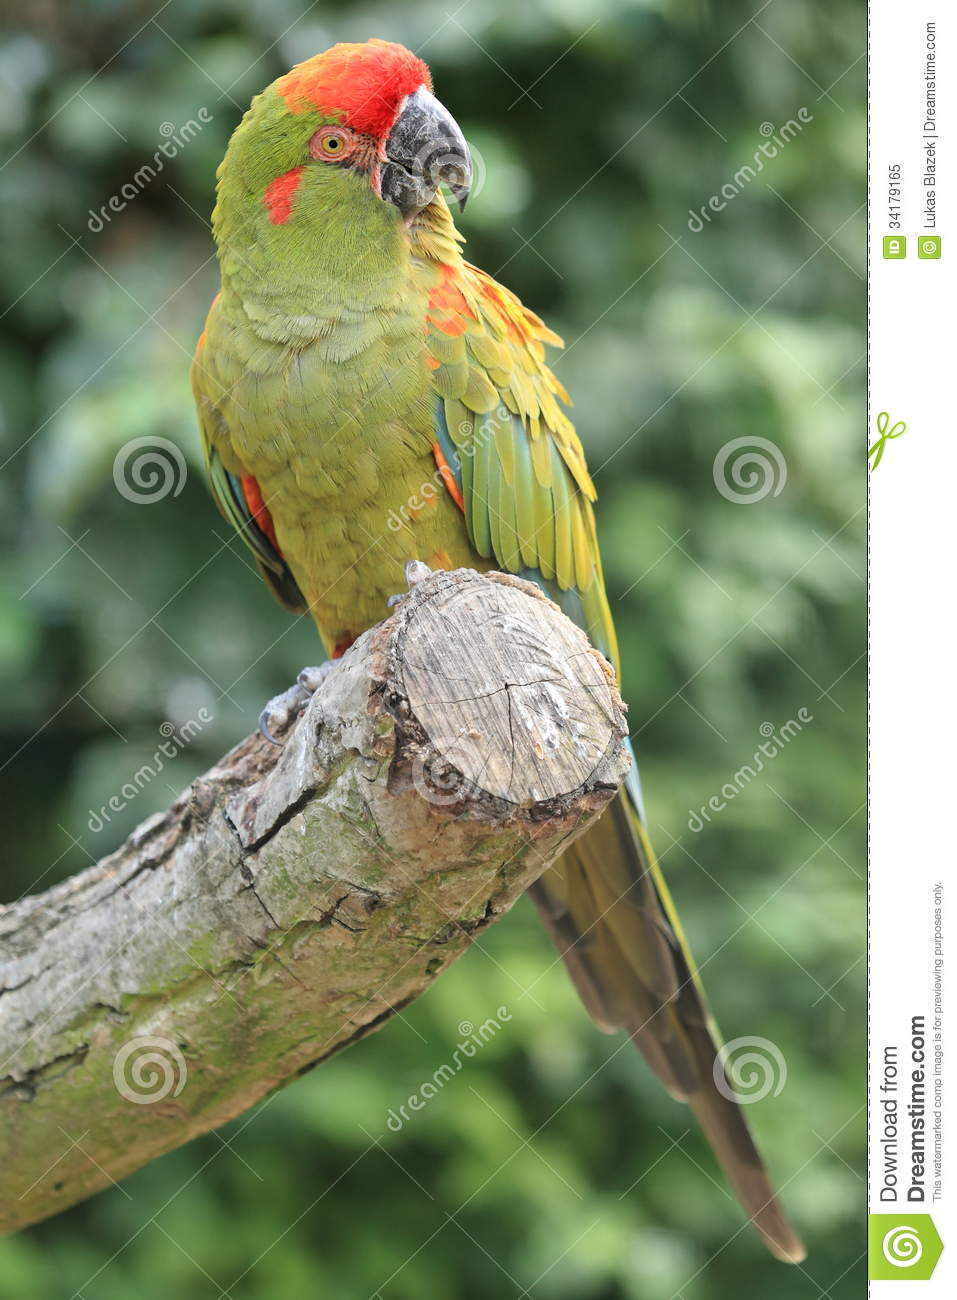 Military Macaw clipart #8, Download drawings